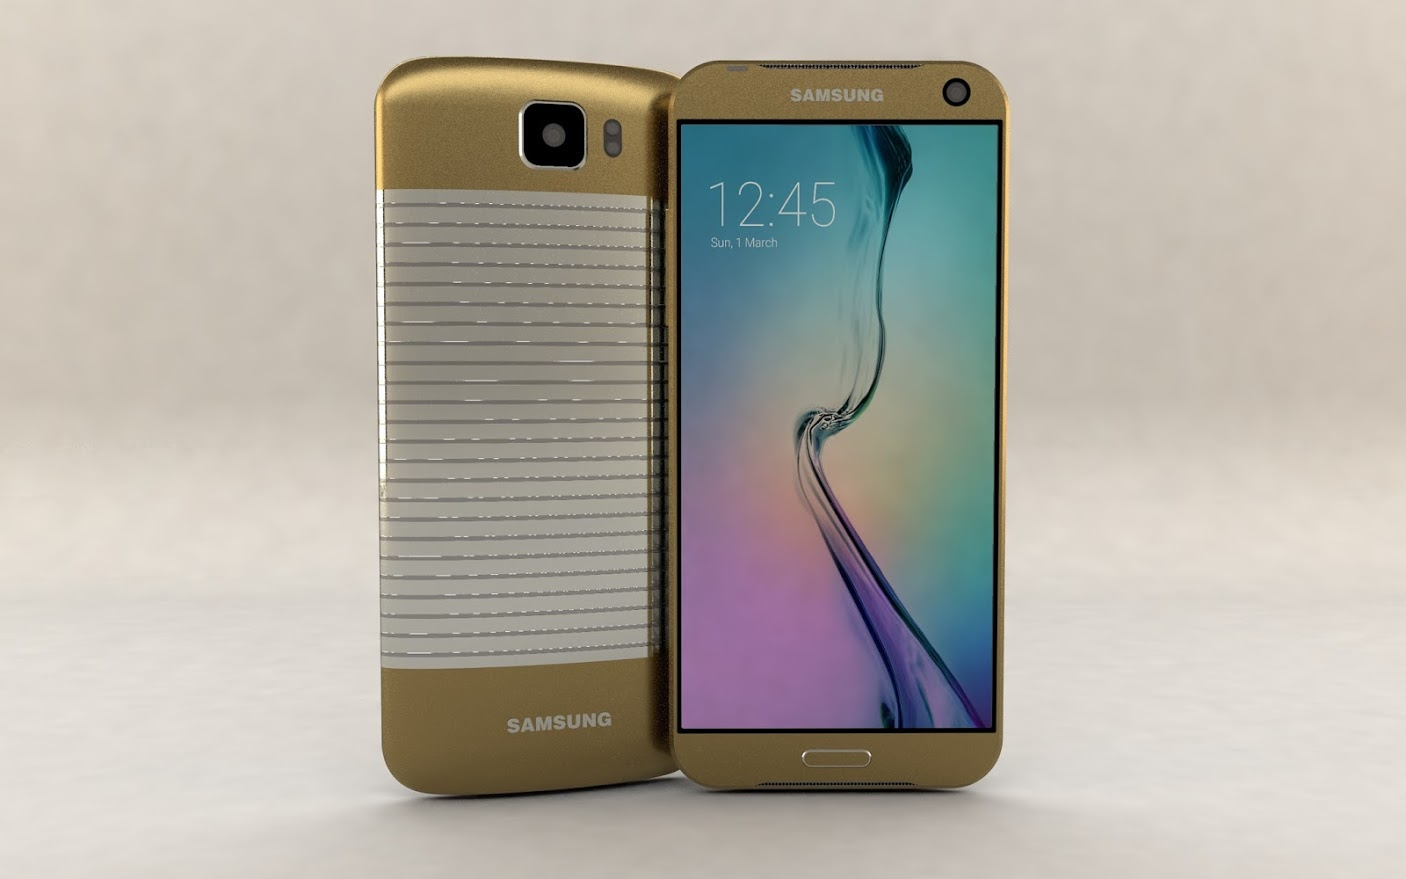 Samsung-Galaxy-S7-concept-renders-by-Hasan-Kaymak